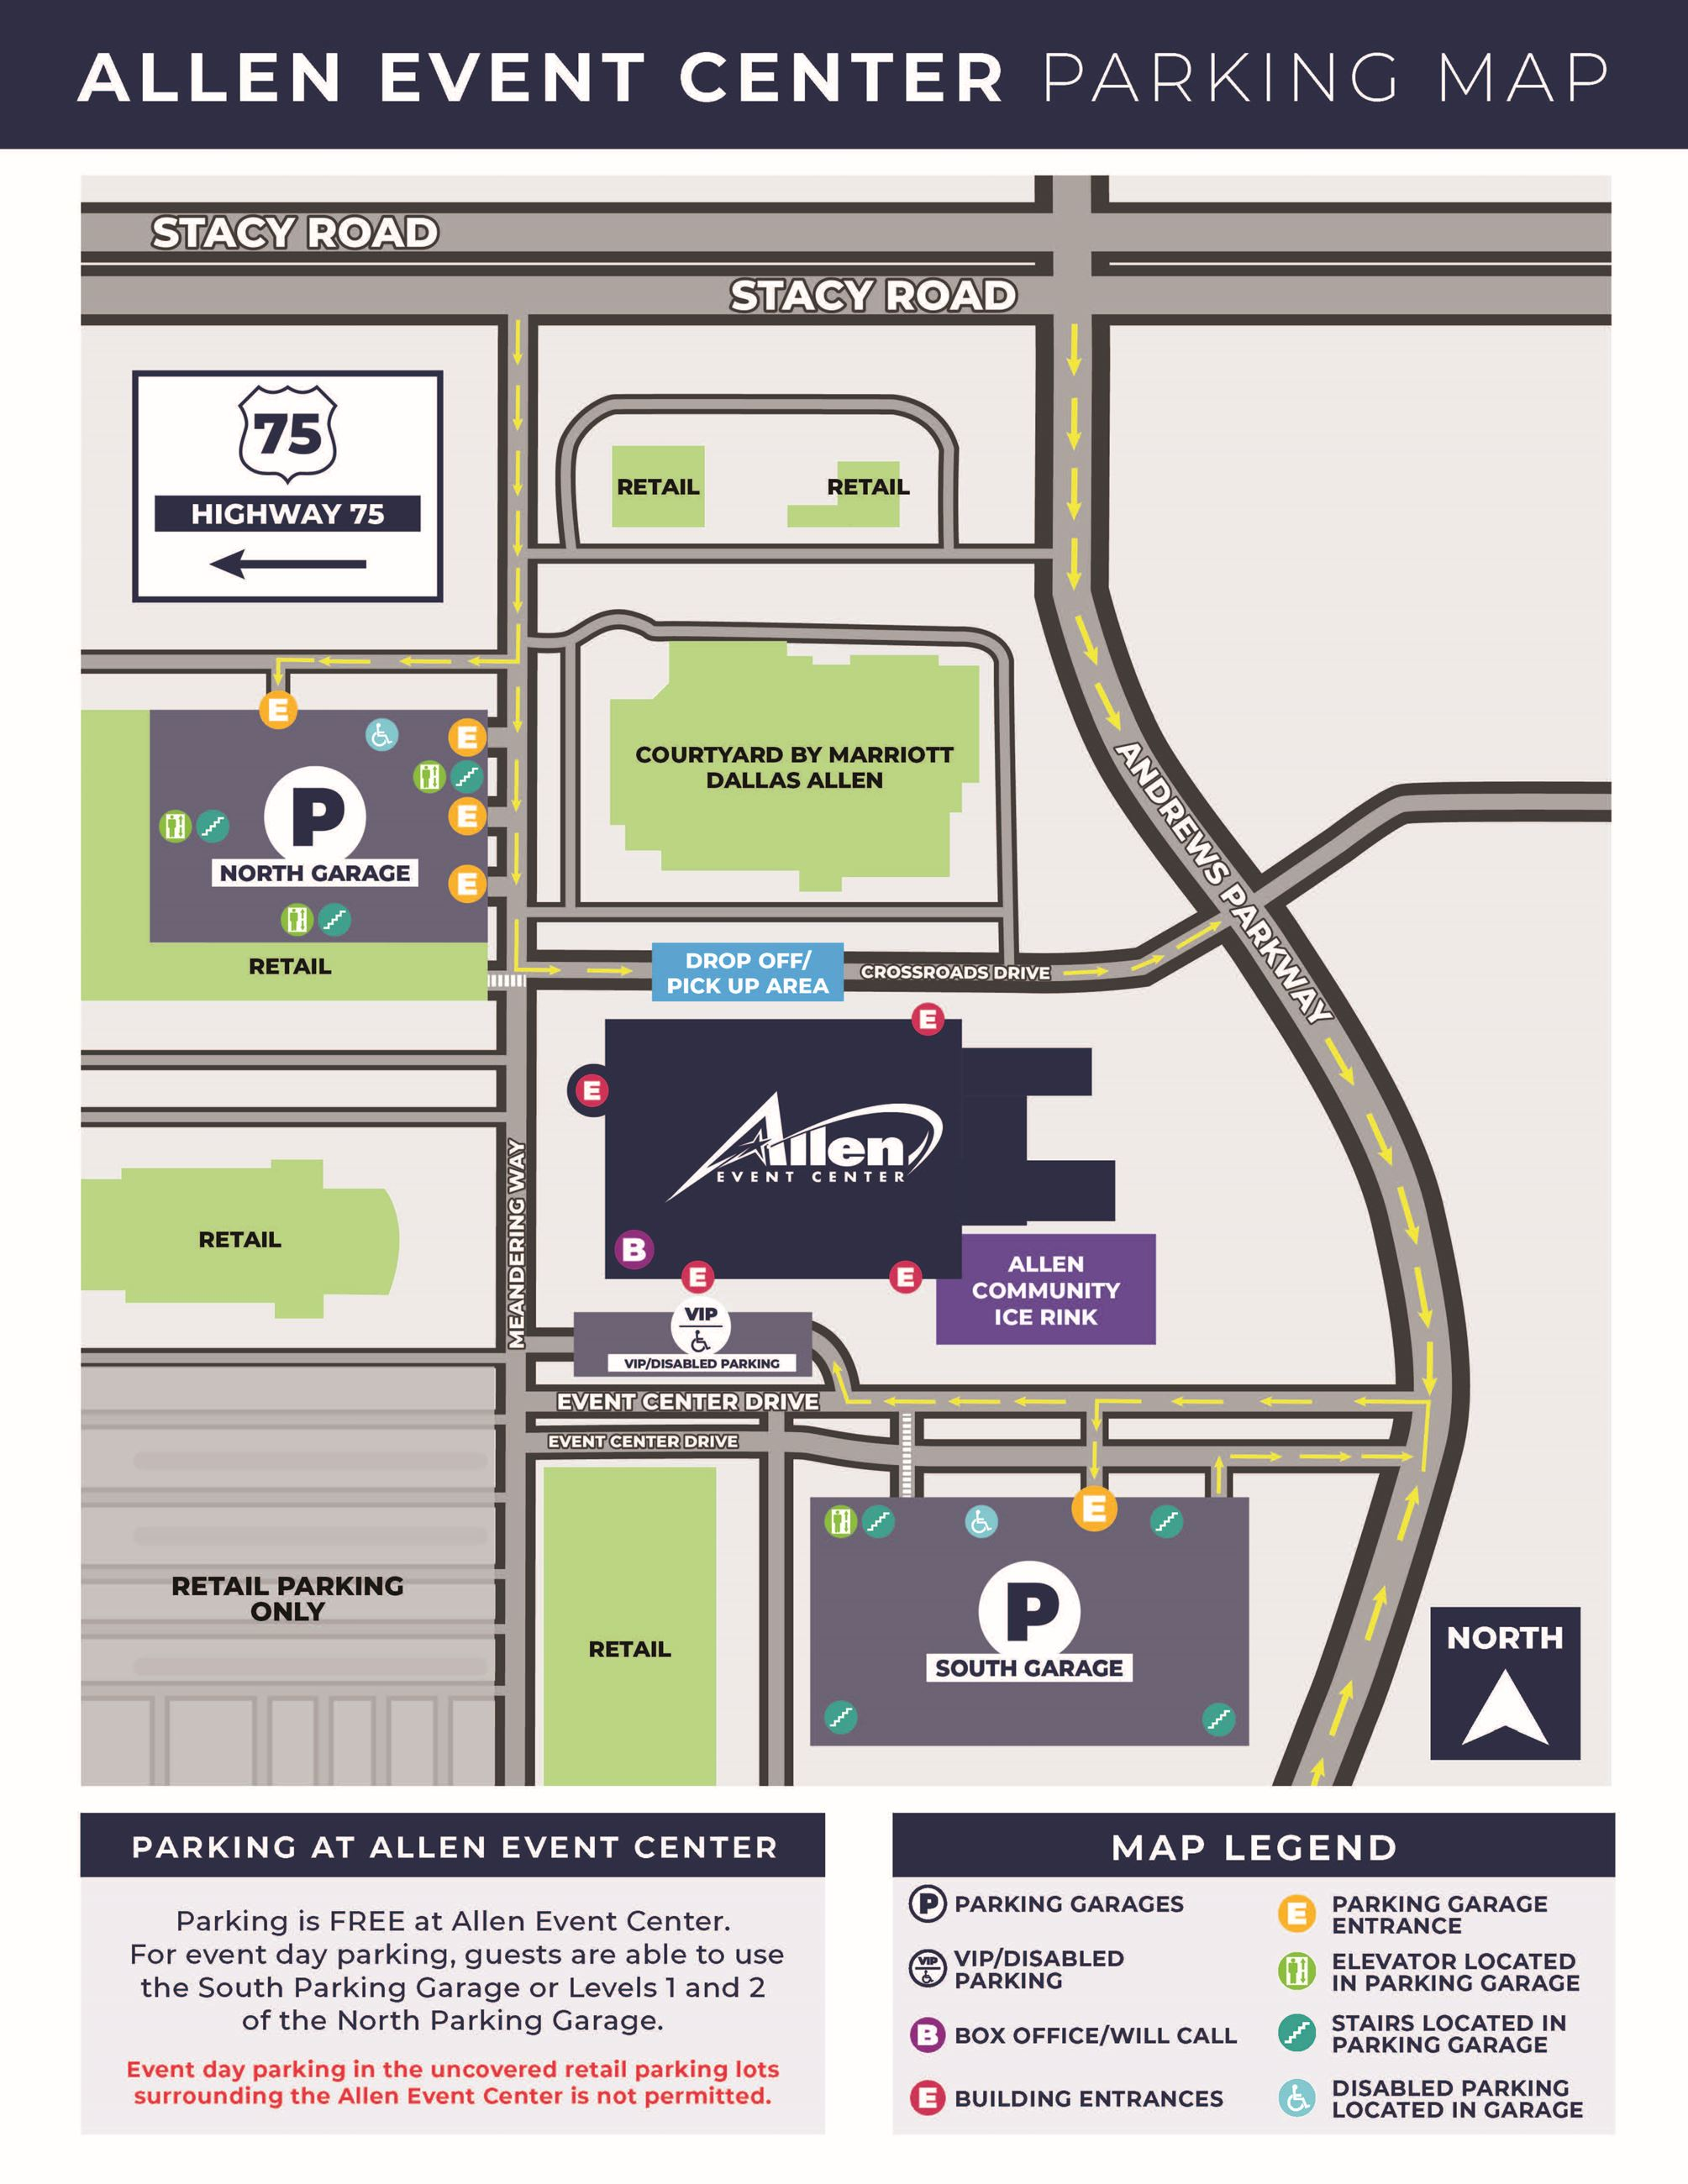 Allen Event Center Parking Map